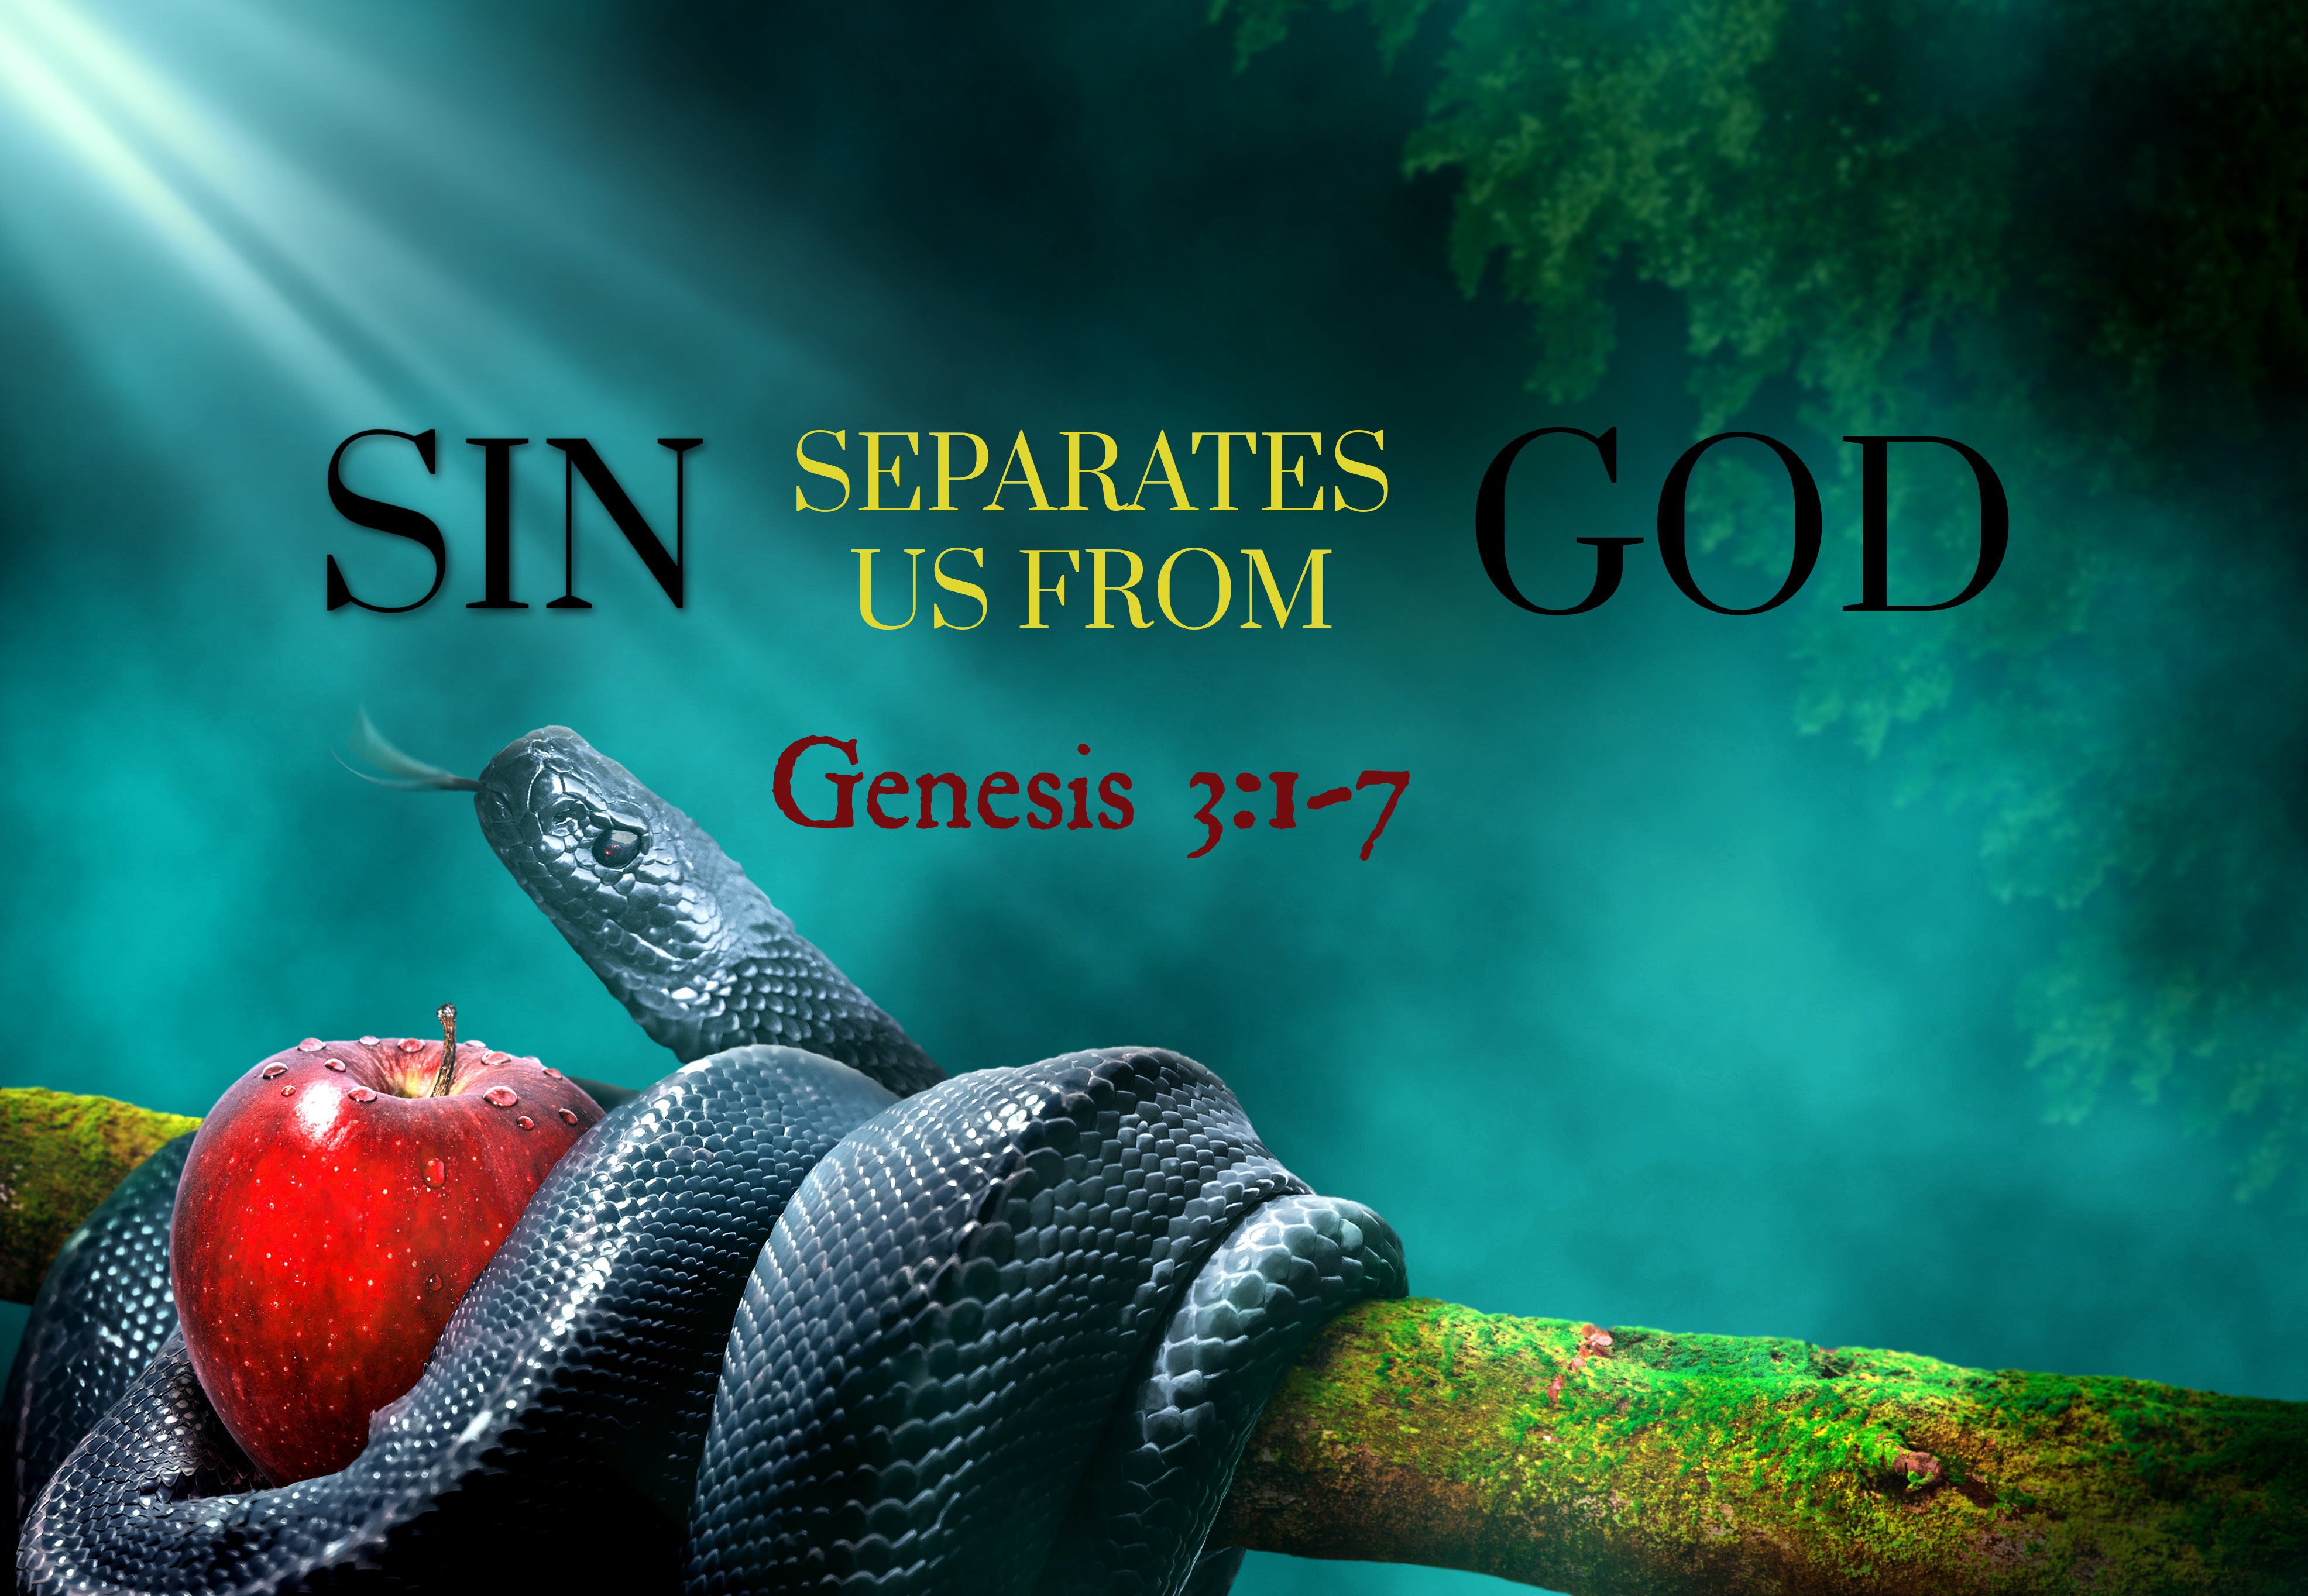 Sin separates from God image